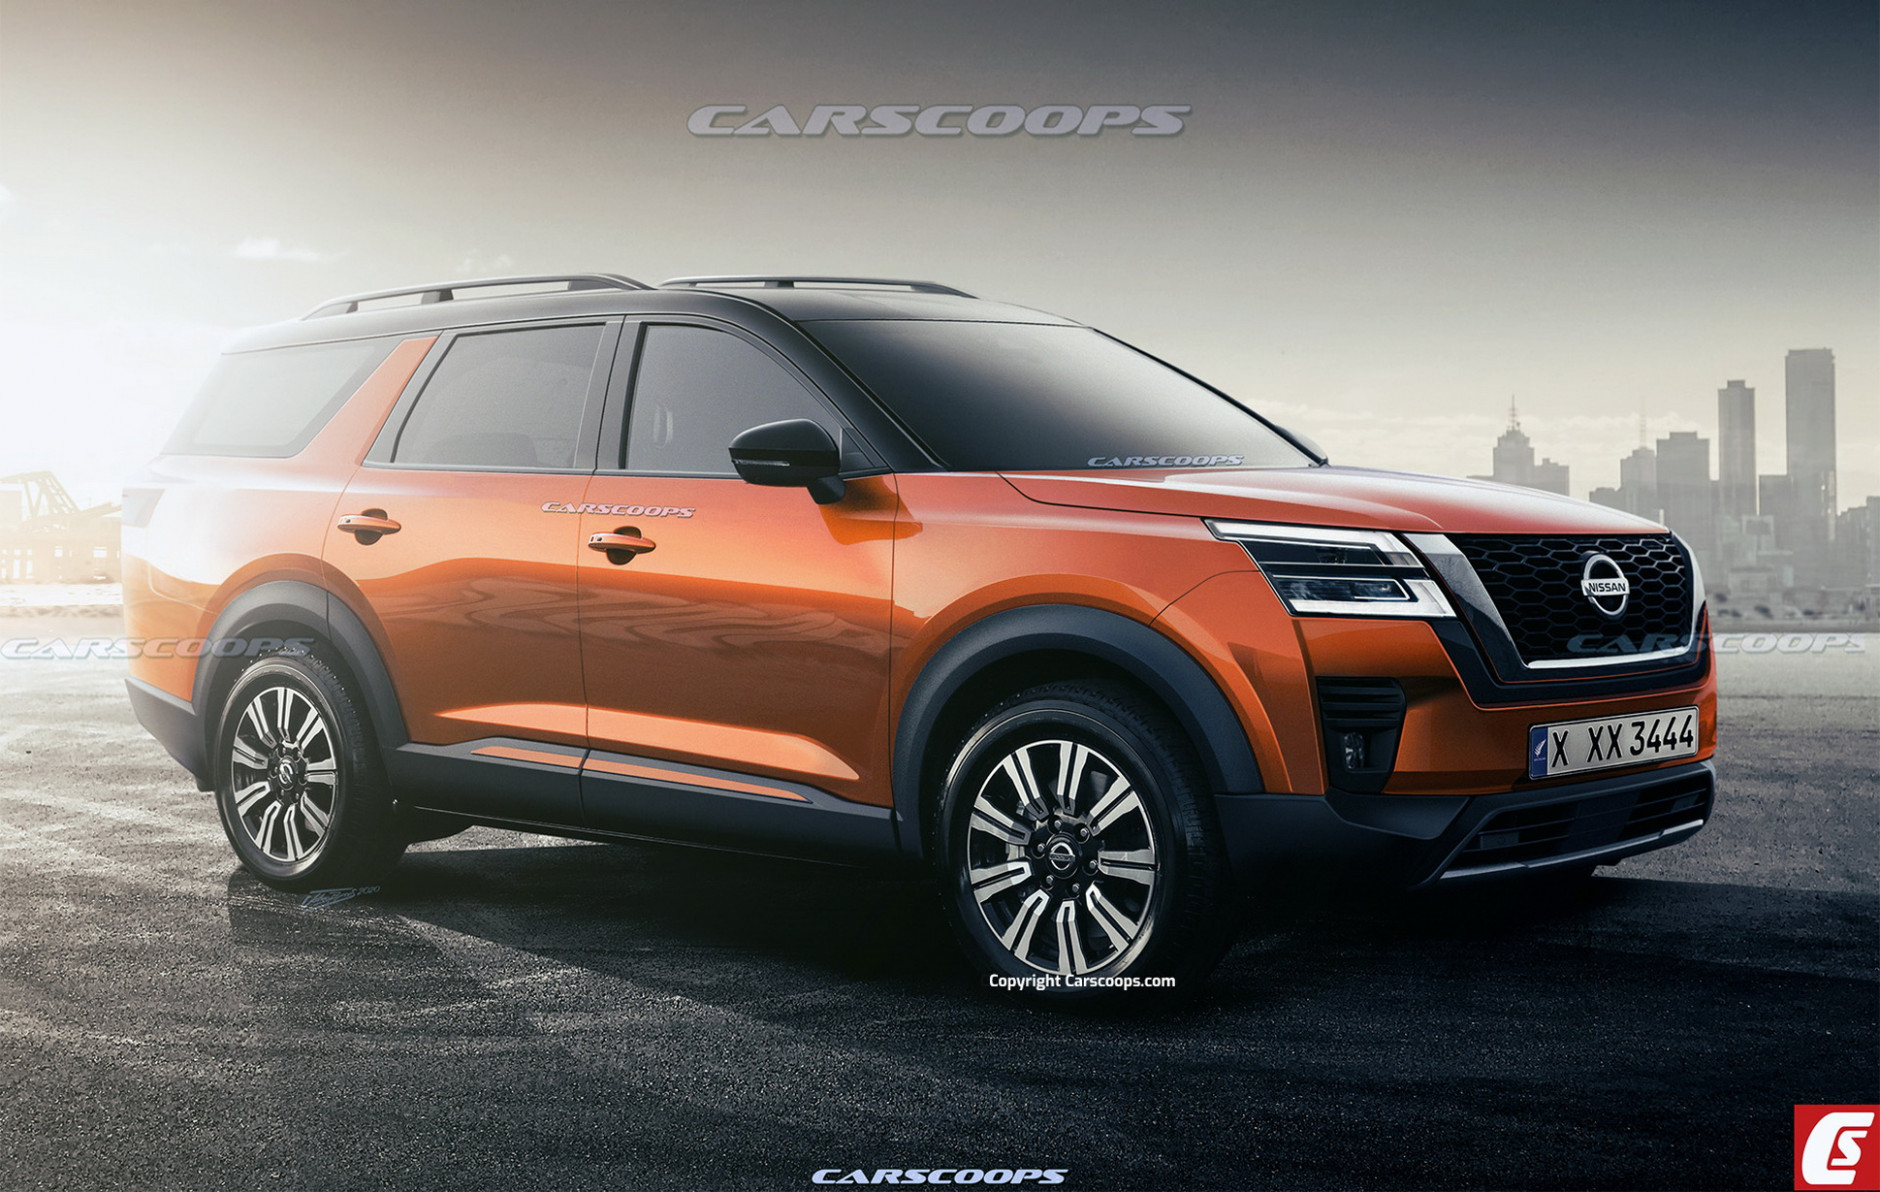 Ratings When Does The 2022 Ford Explorer Come Out